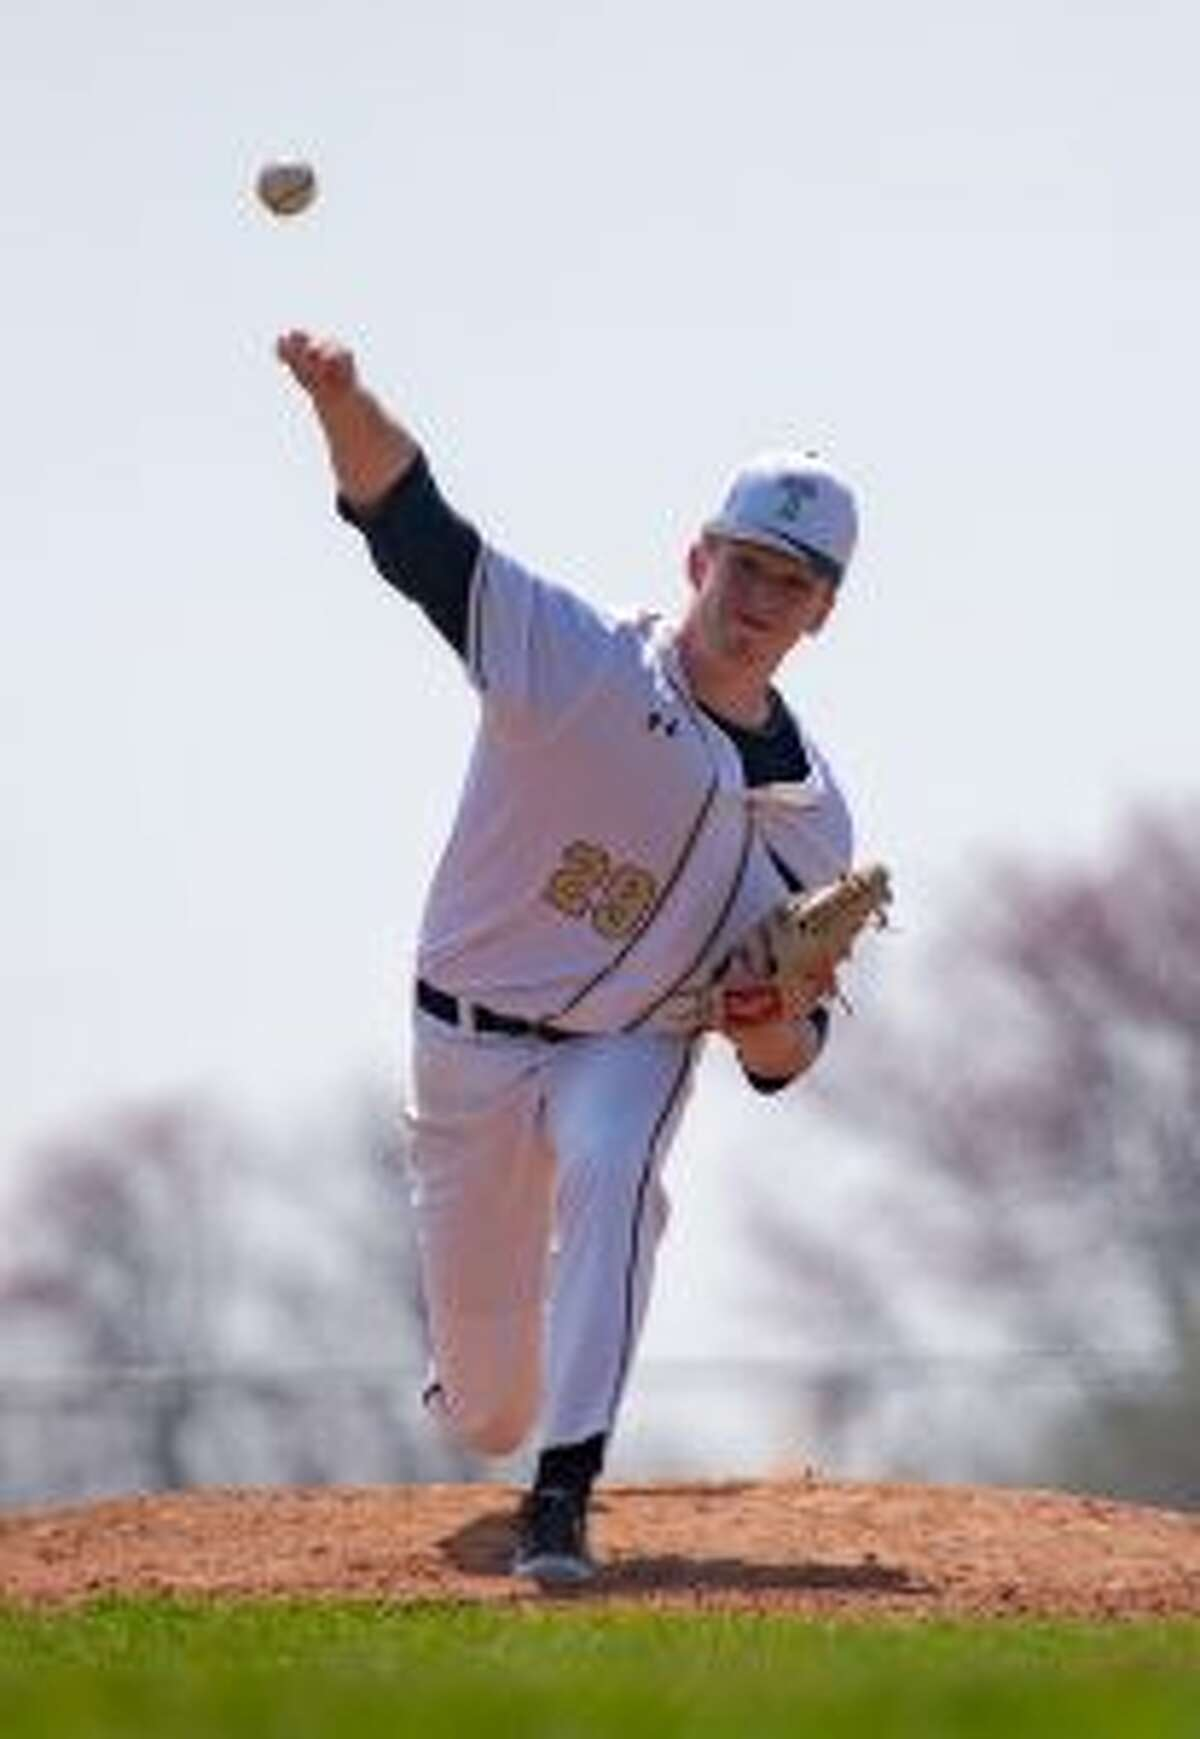 Ryan Vawter pitched five shut out innings. - David G. Whitham photo